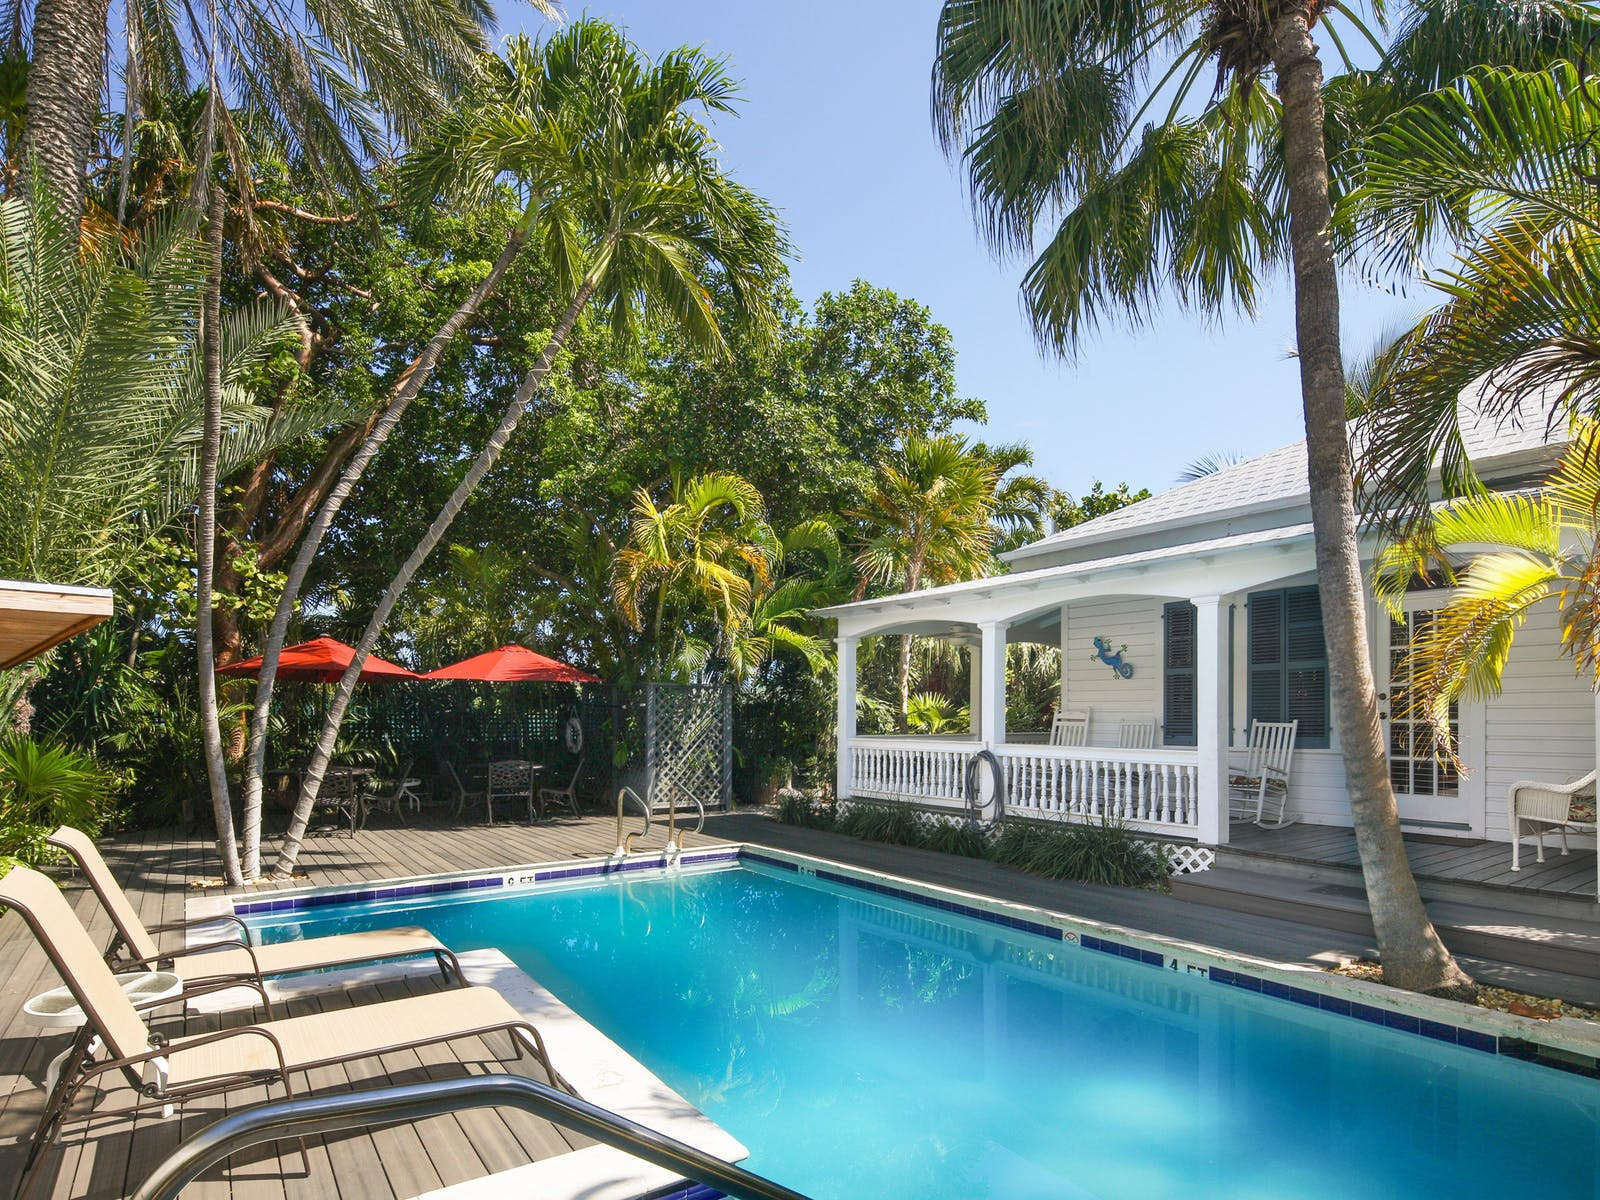 Outdoor pool with lounge chairs and palm trees near a white vacation home in Key West, FL.